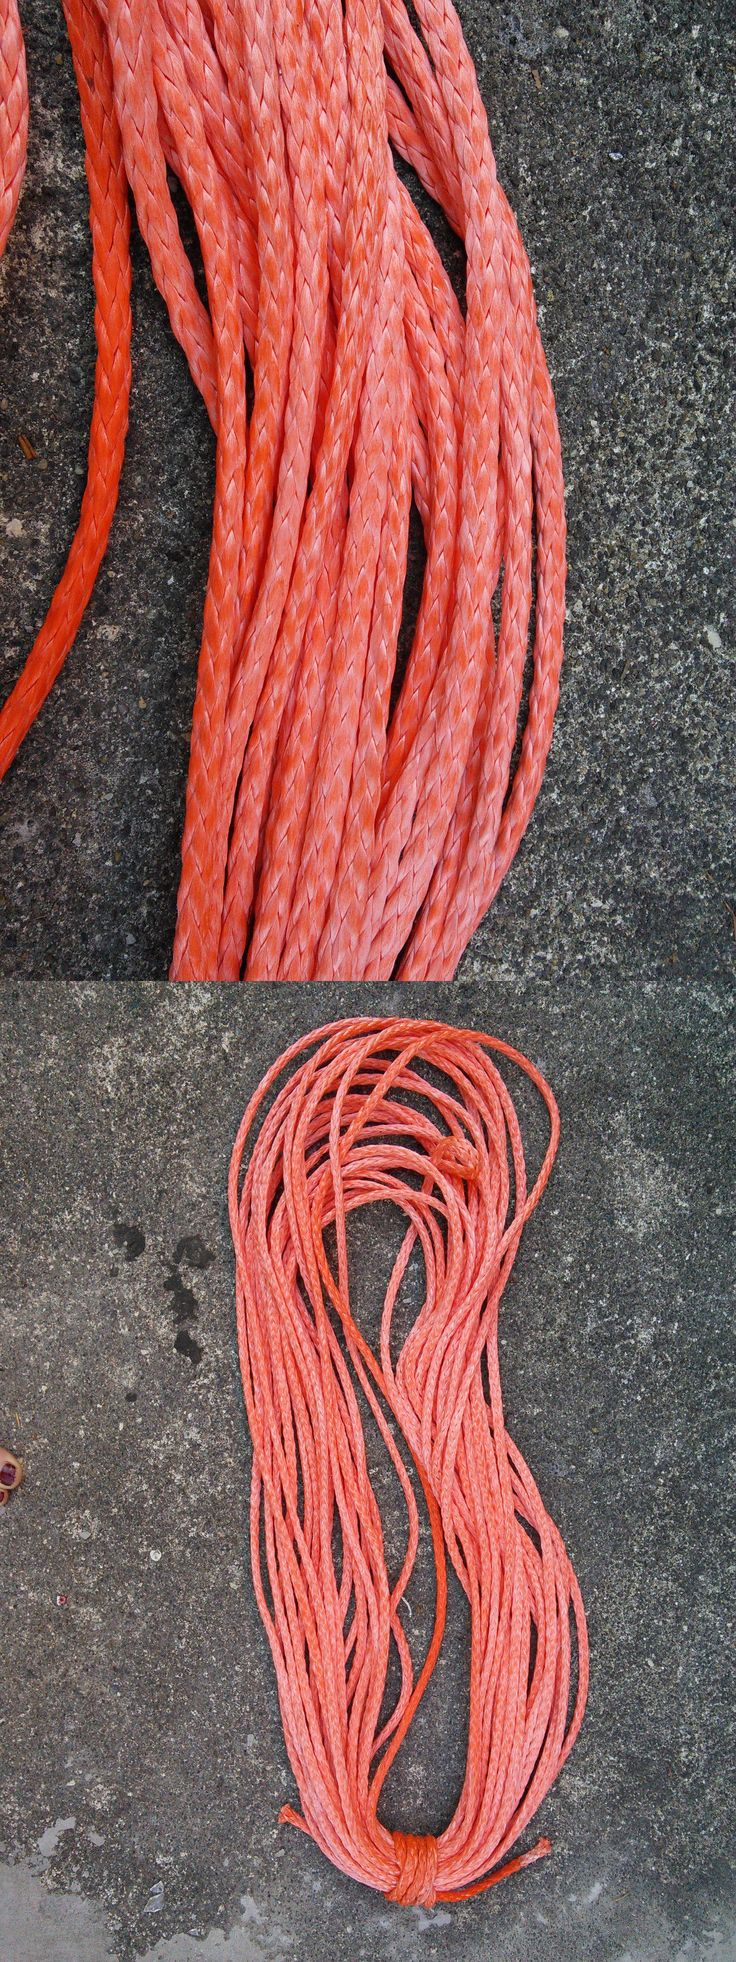 Ropes Cords and Slings 50816: 100 Of 3 16 Dyneema Sk-78 Wire Replacement Rope Light Synthetic Winch Line -> BUY IT NOW ONLY: $50 on eBay!